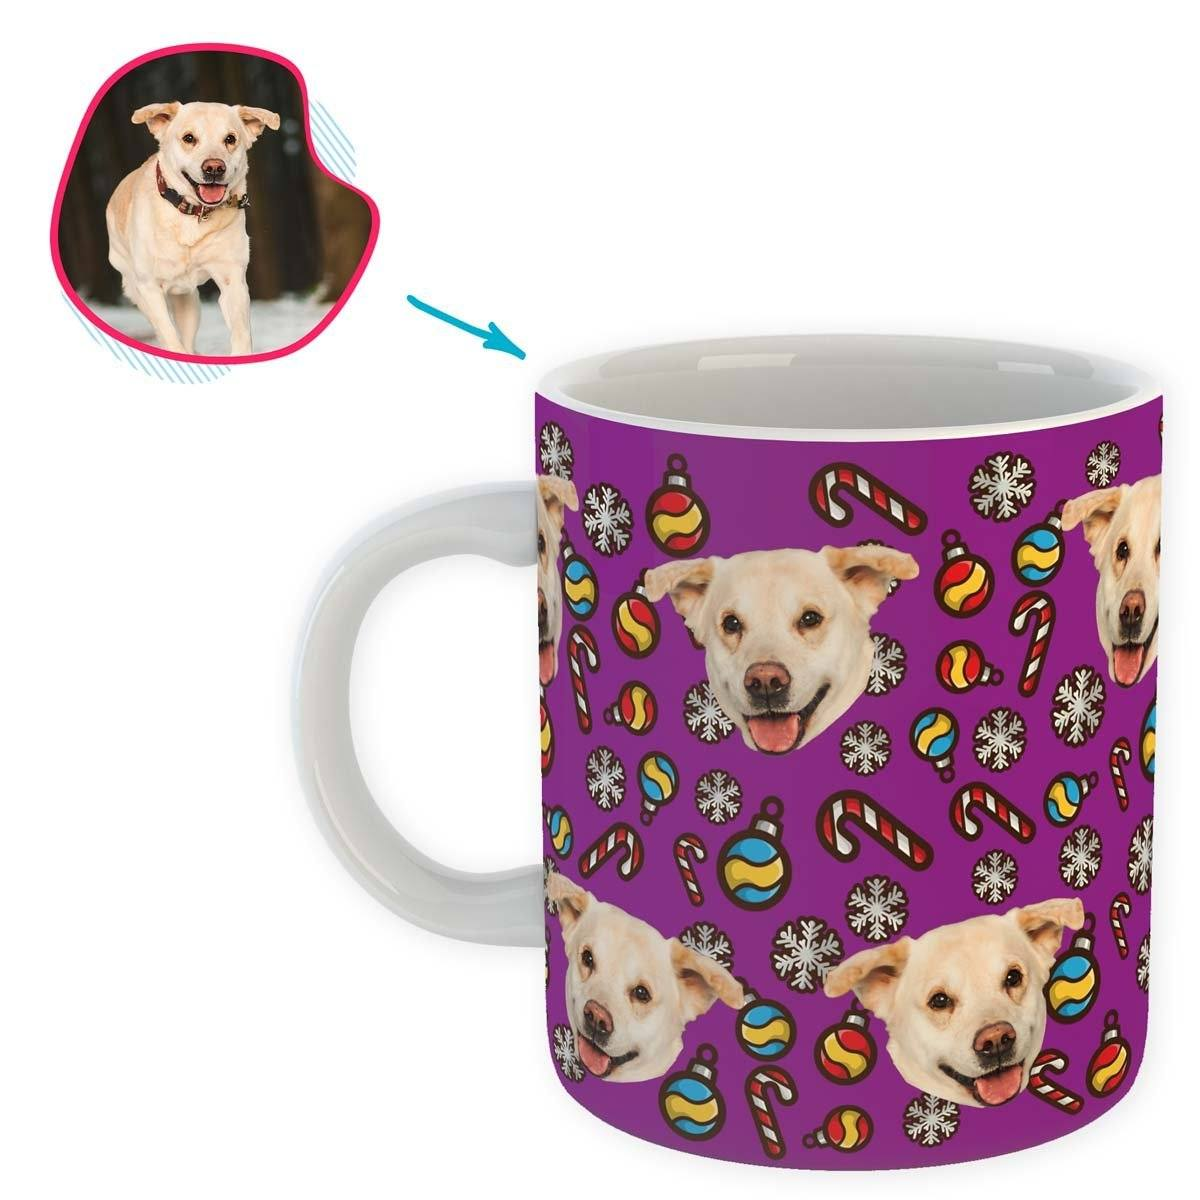 purple Christmas Tree Toy mug personalized with photo of face printed on it